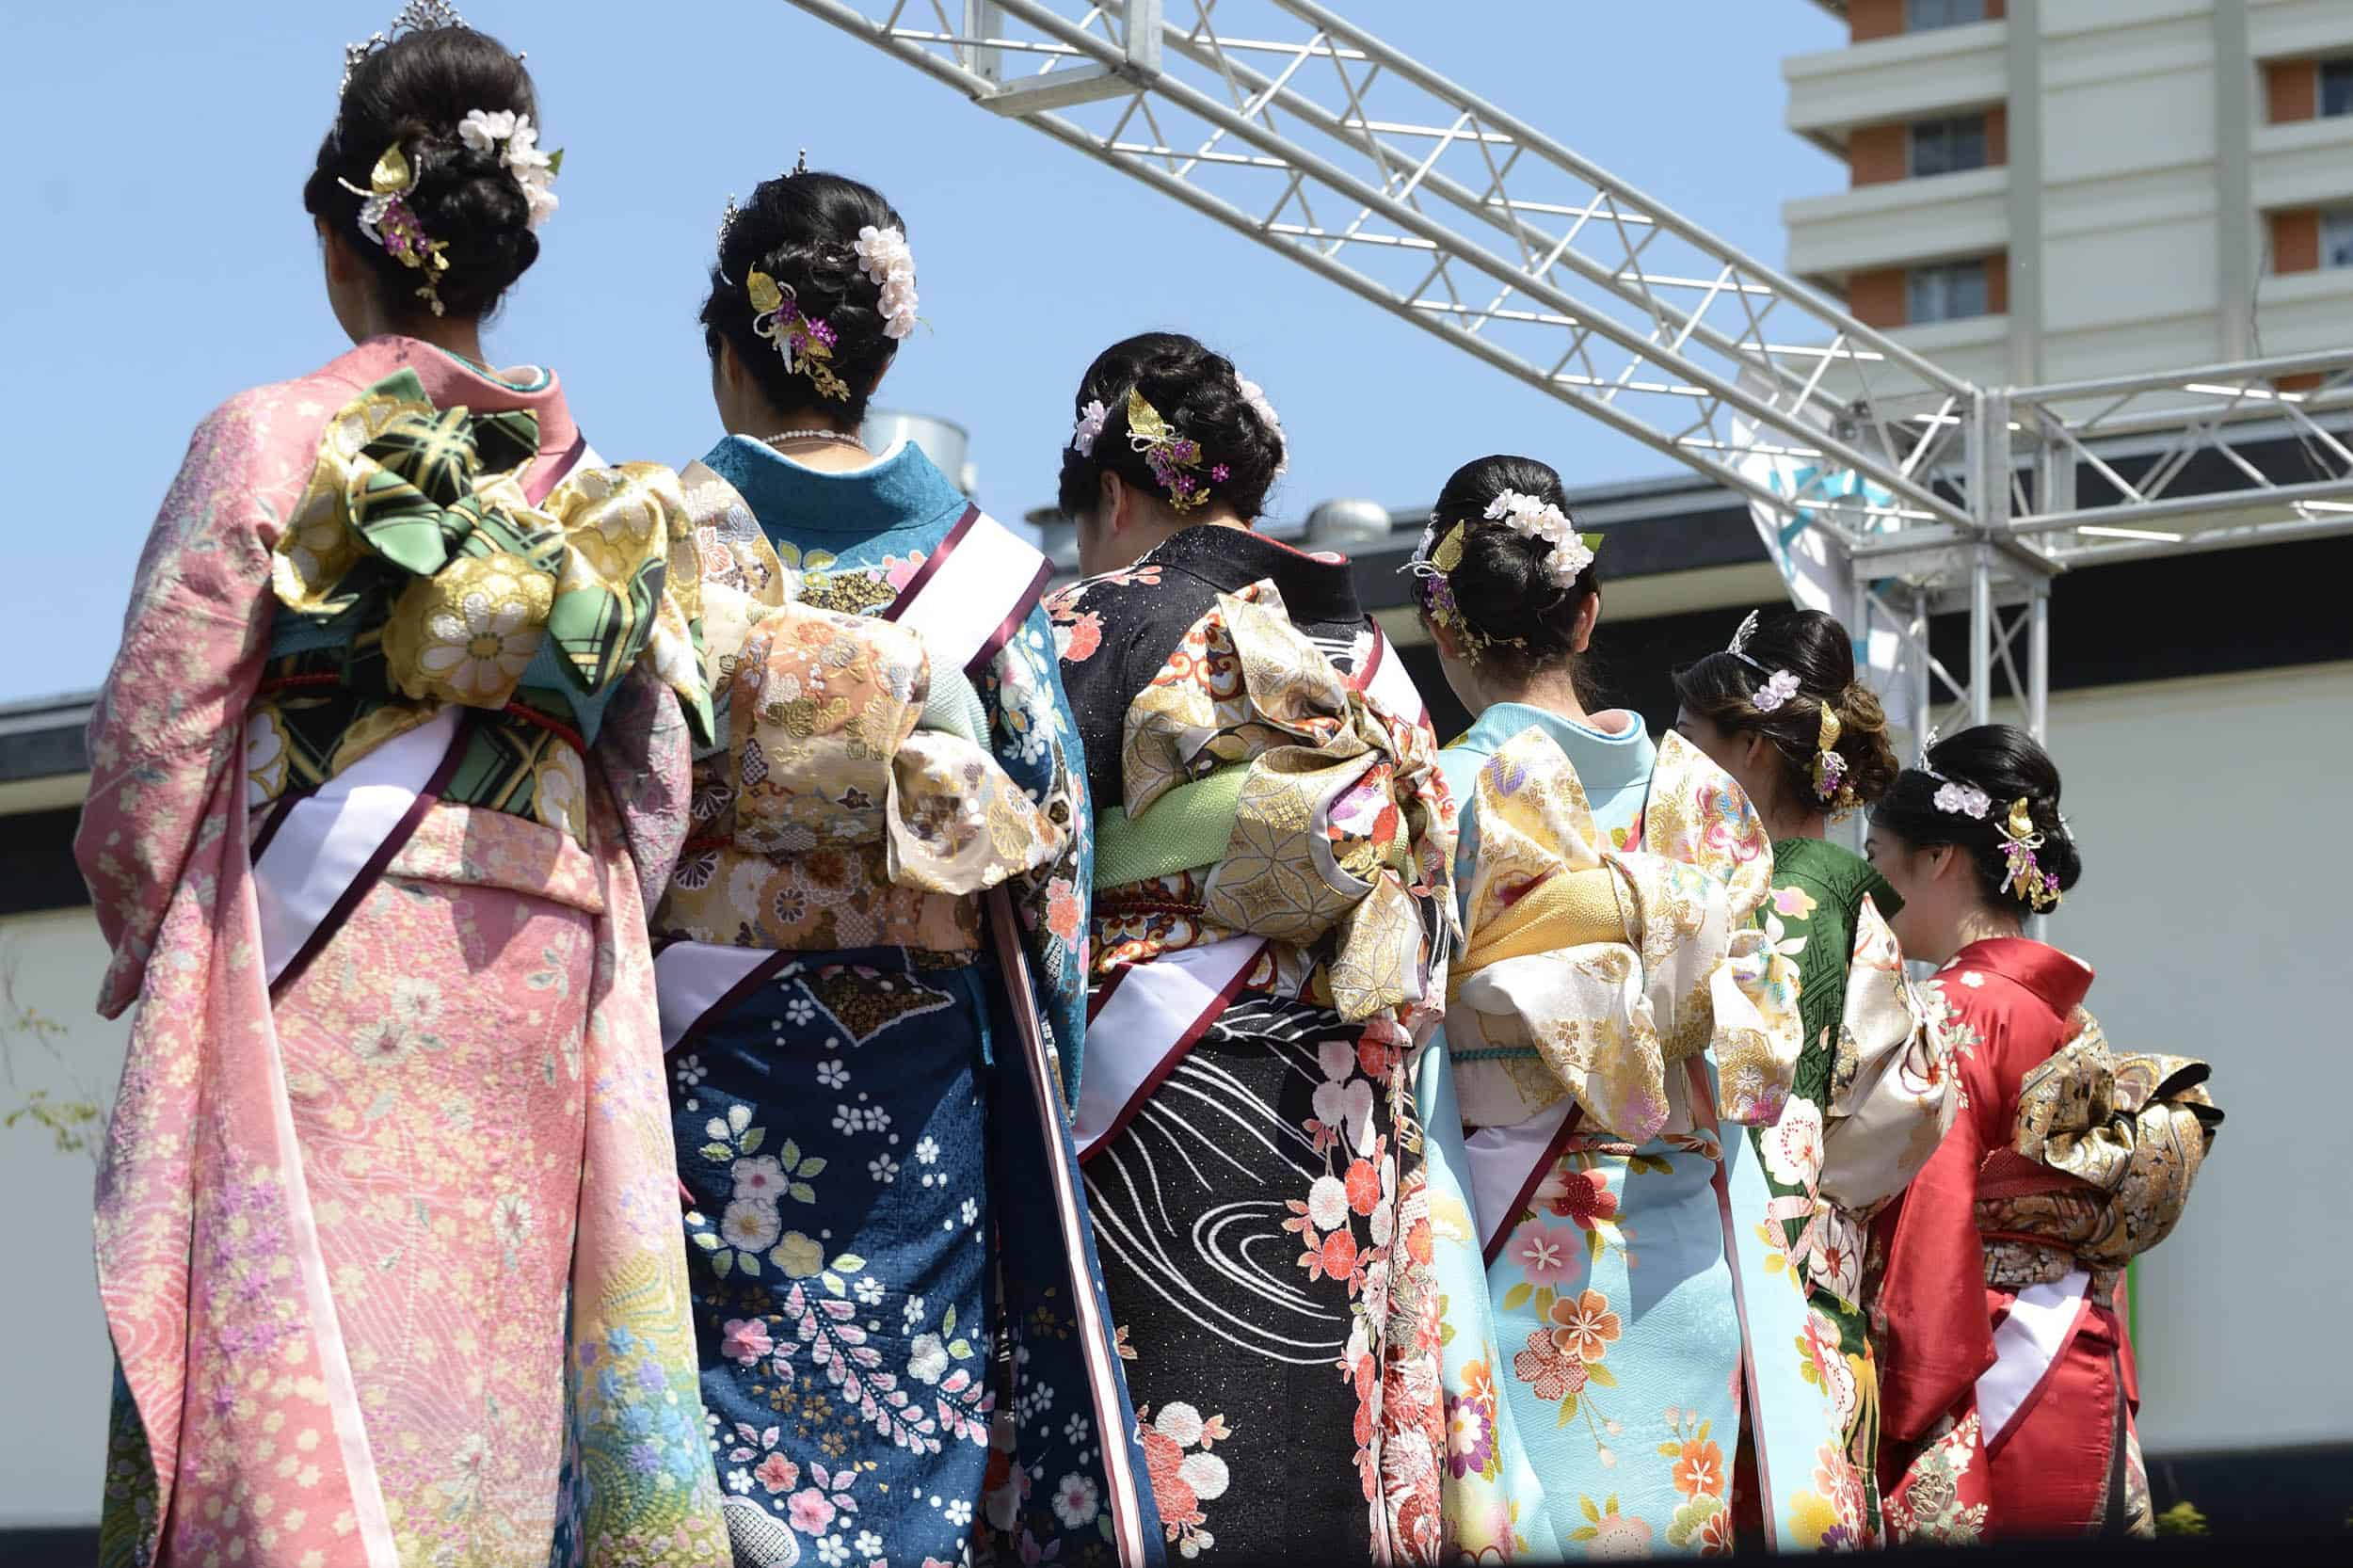 Queen and Court Kimonos at Cherry Blossom Festival